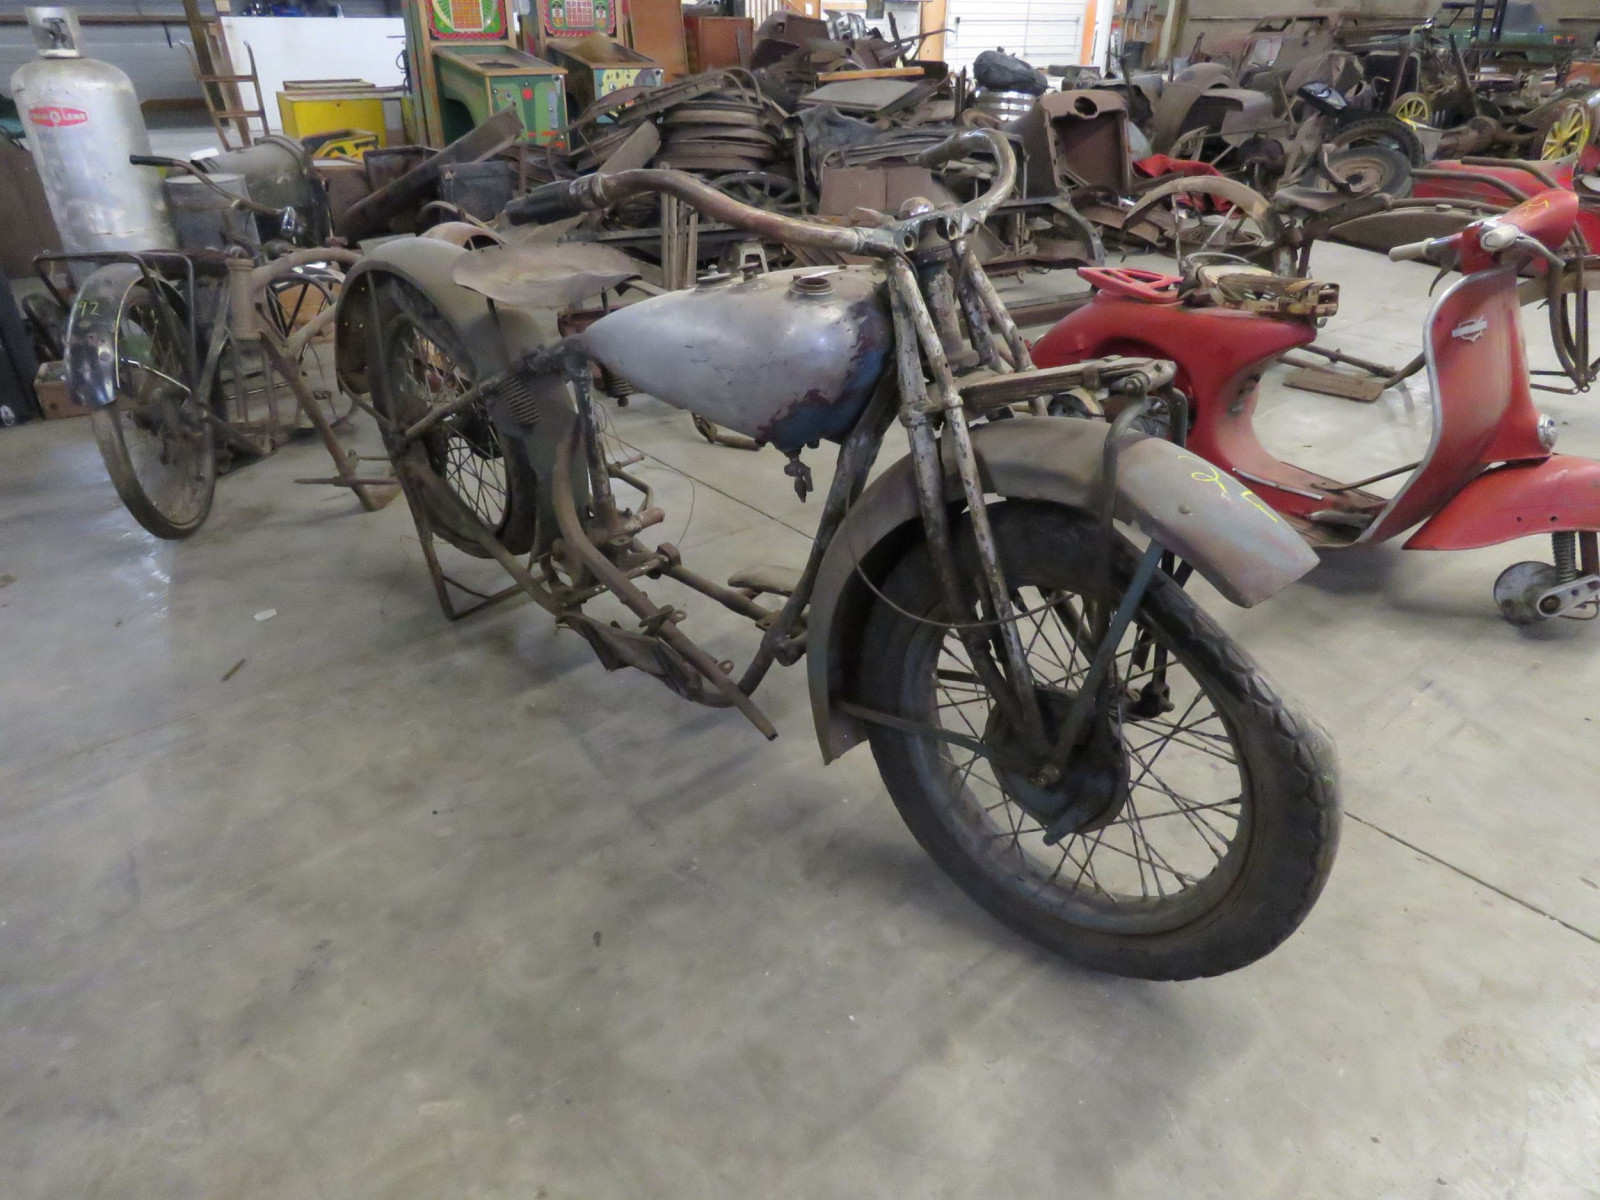 RARE 1929 Indian V-Twin Motorcycle - Image 2